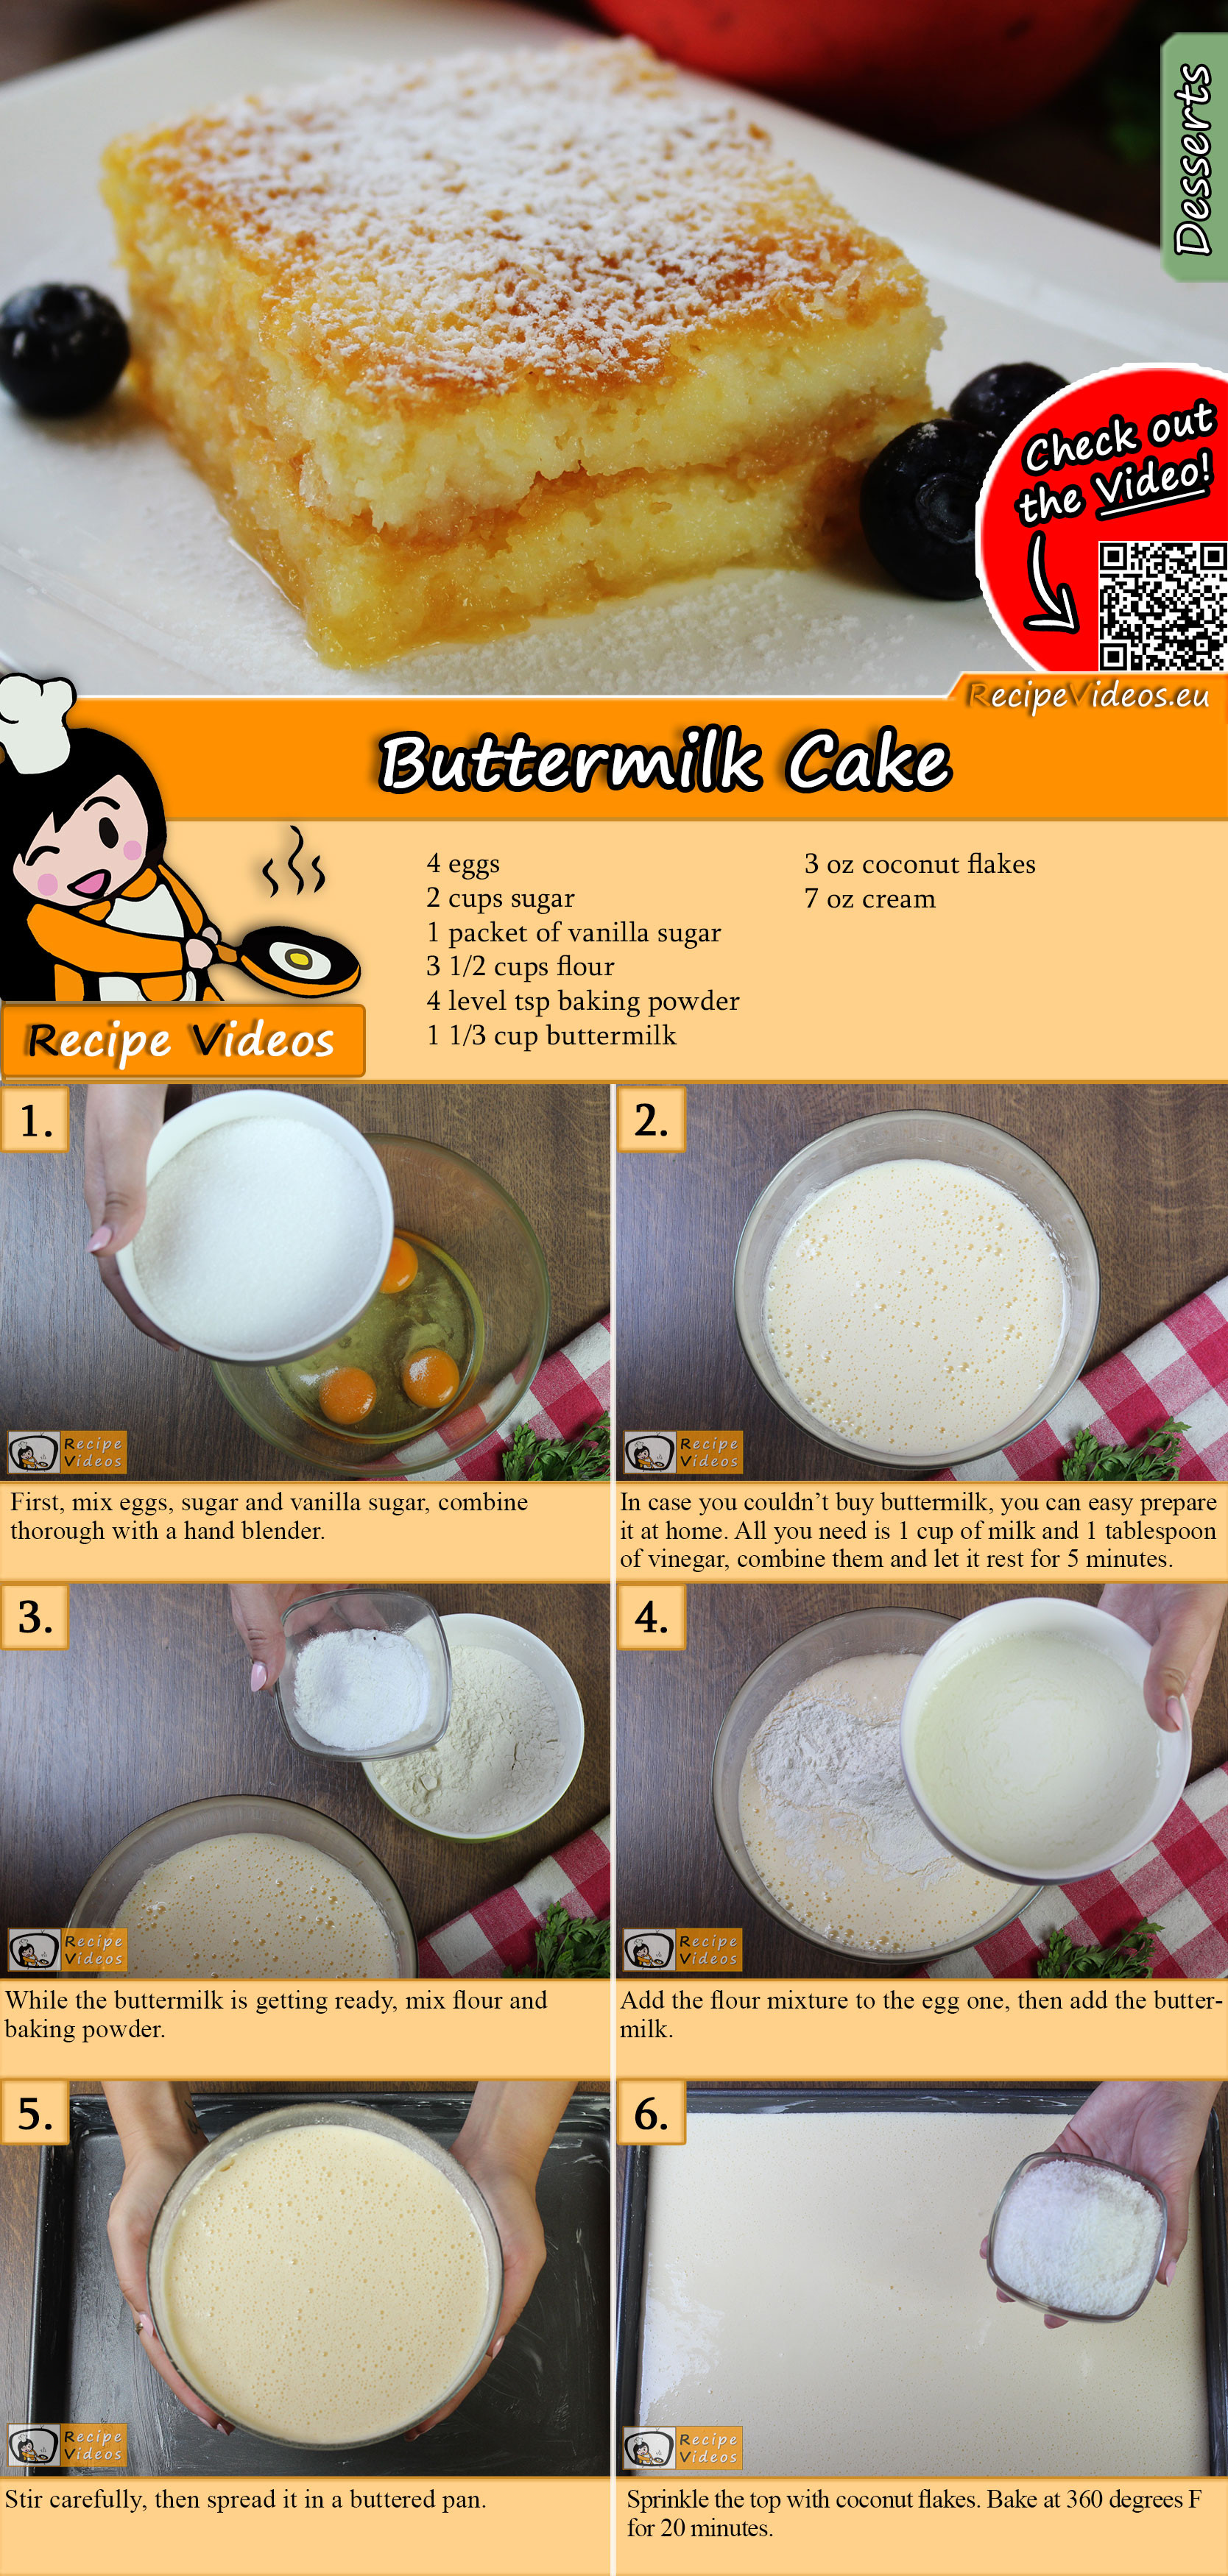 Buttermilk cake recipe with video